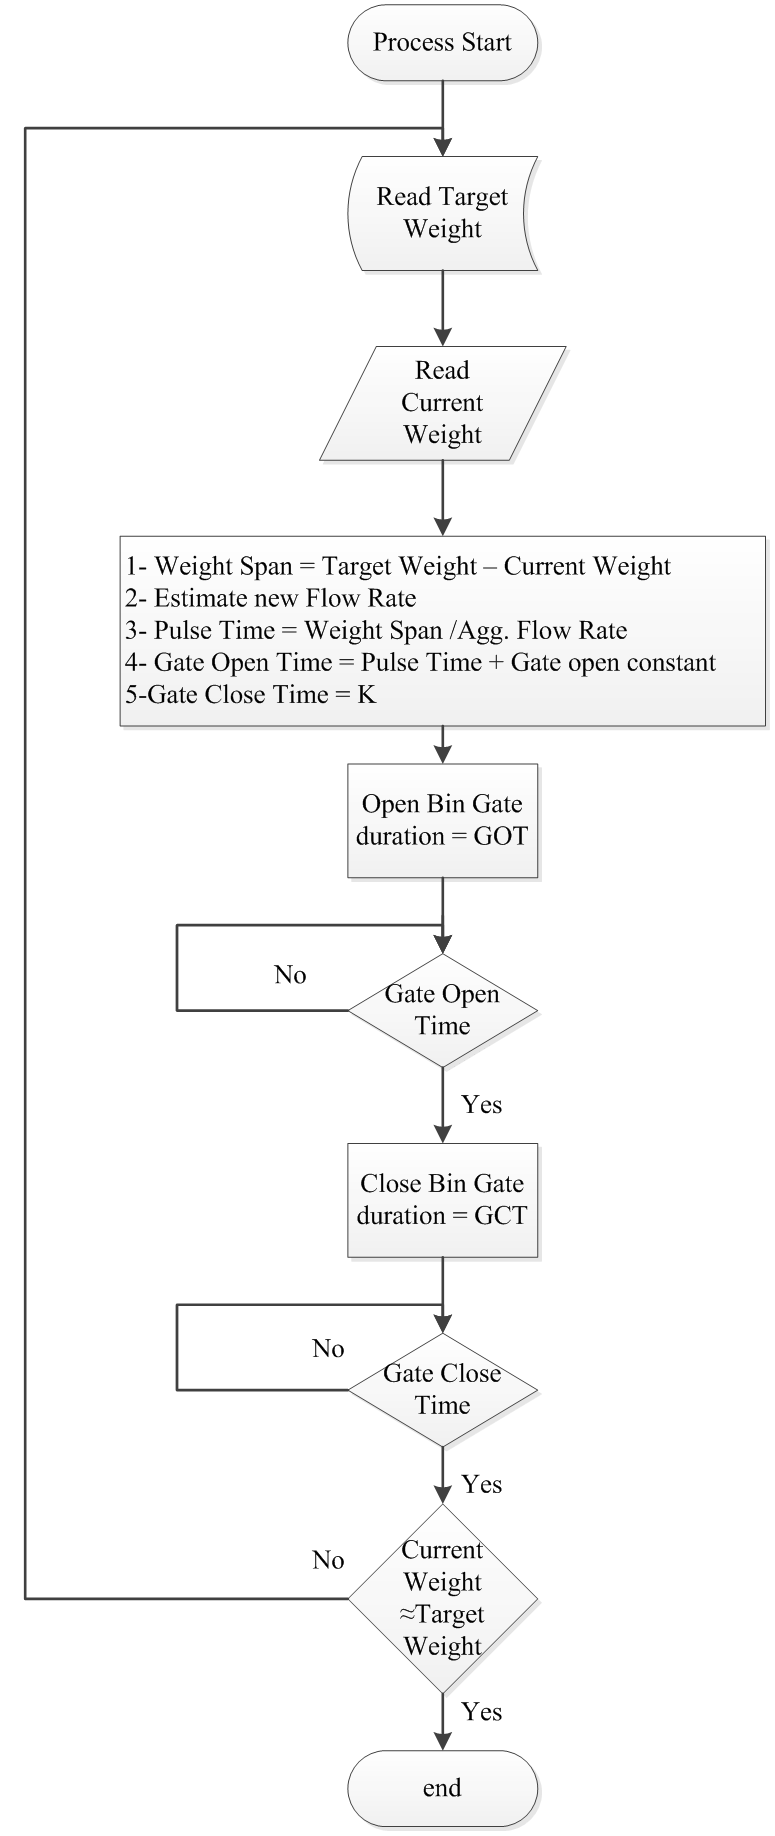 Aggregate Batch Weighing Process Flow Chart : Concrete Batch Process  Quality Control Using Controller Self Parameter Tuning : Science and  Education ...